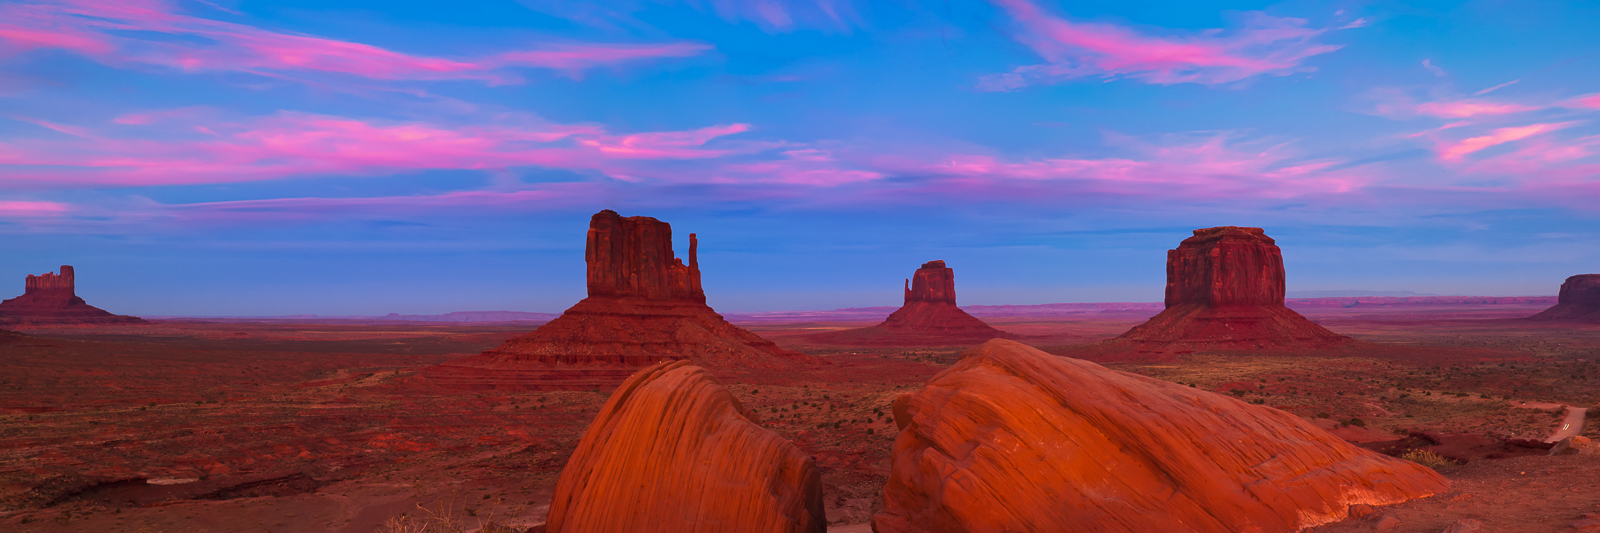 Desert,Horizontal,Monument Valley,Orange,Panoramic,landscape,sunset,pink,Arizona,Mittens,Pink Clouds,Night, photo